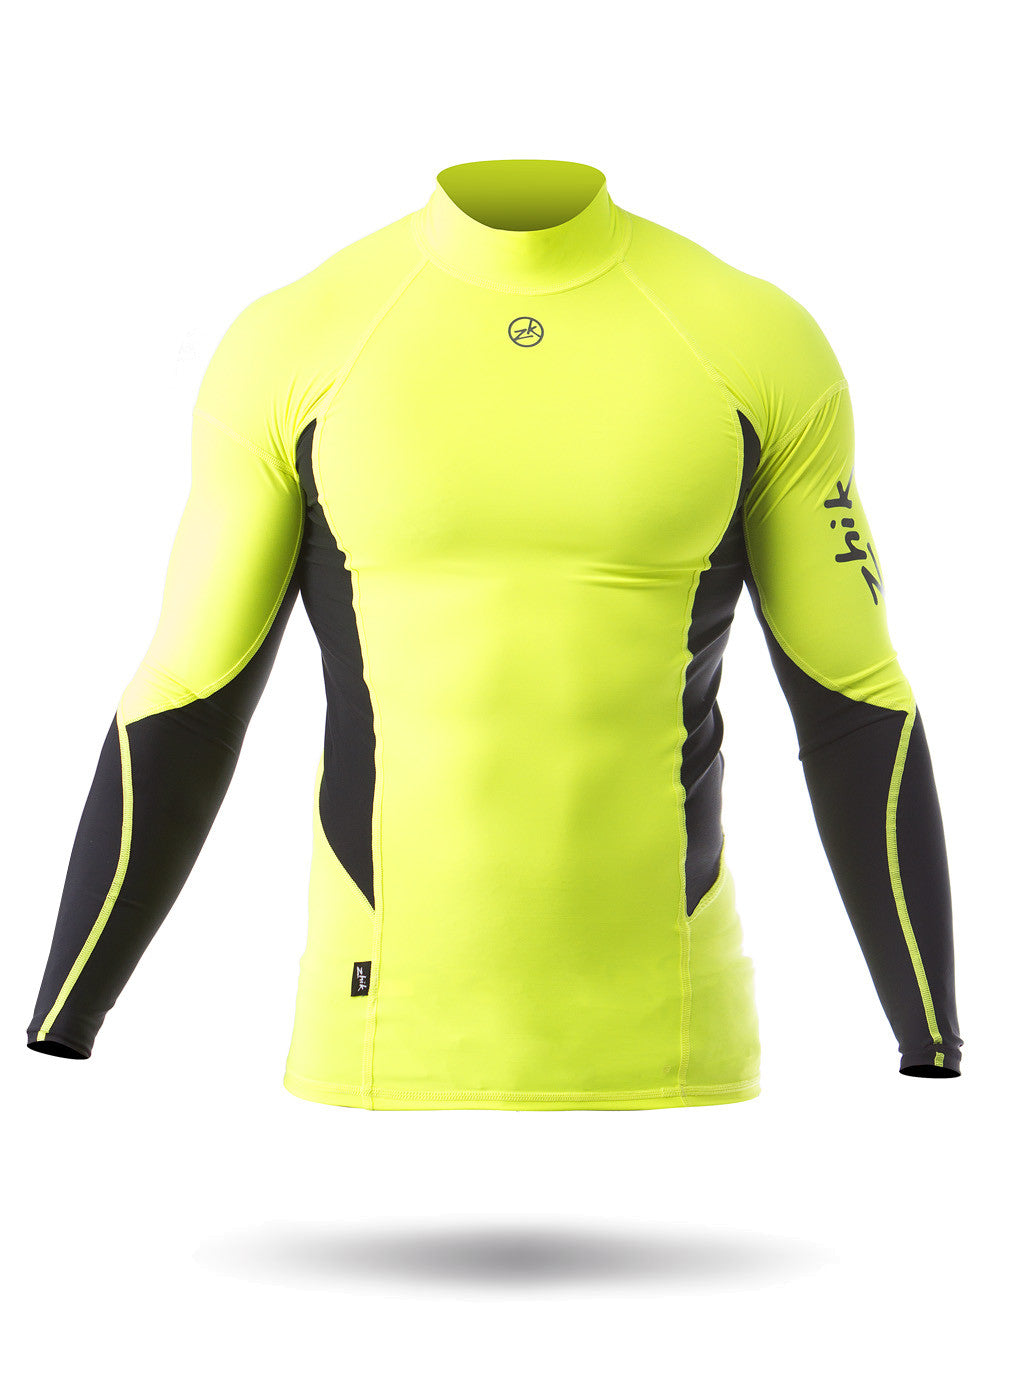 Zhik Men's Long Sleeve Spandex Top in HiVis